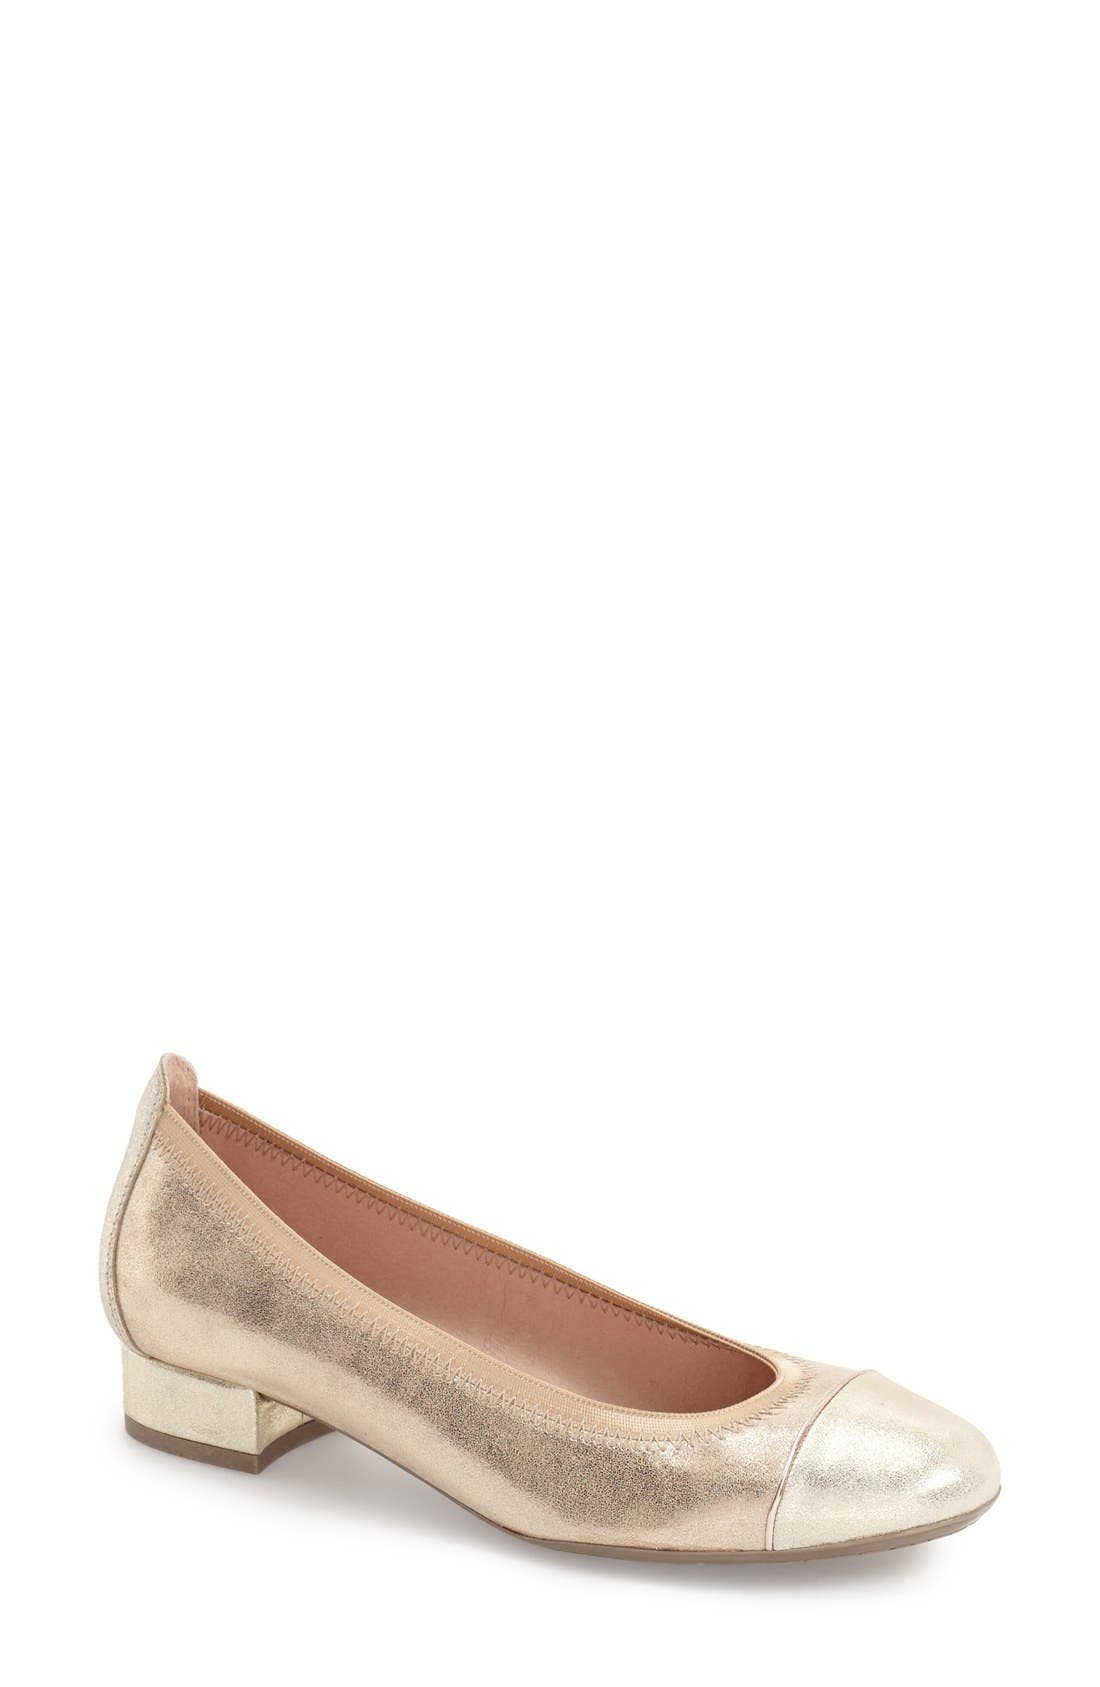 Main Image - Hispanitas 'Cali' Metallic Cap Toe Pump (Women)